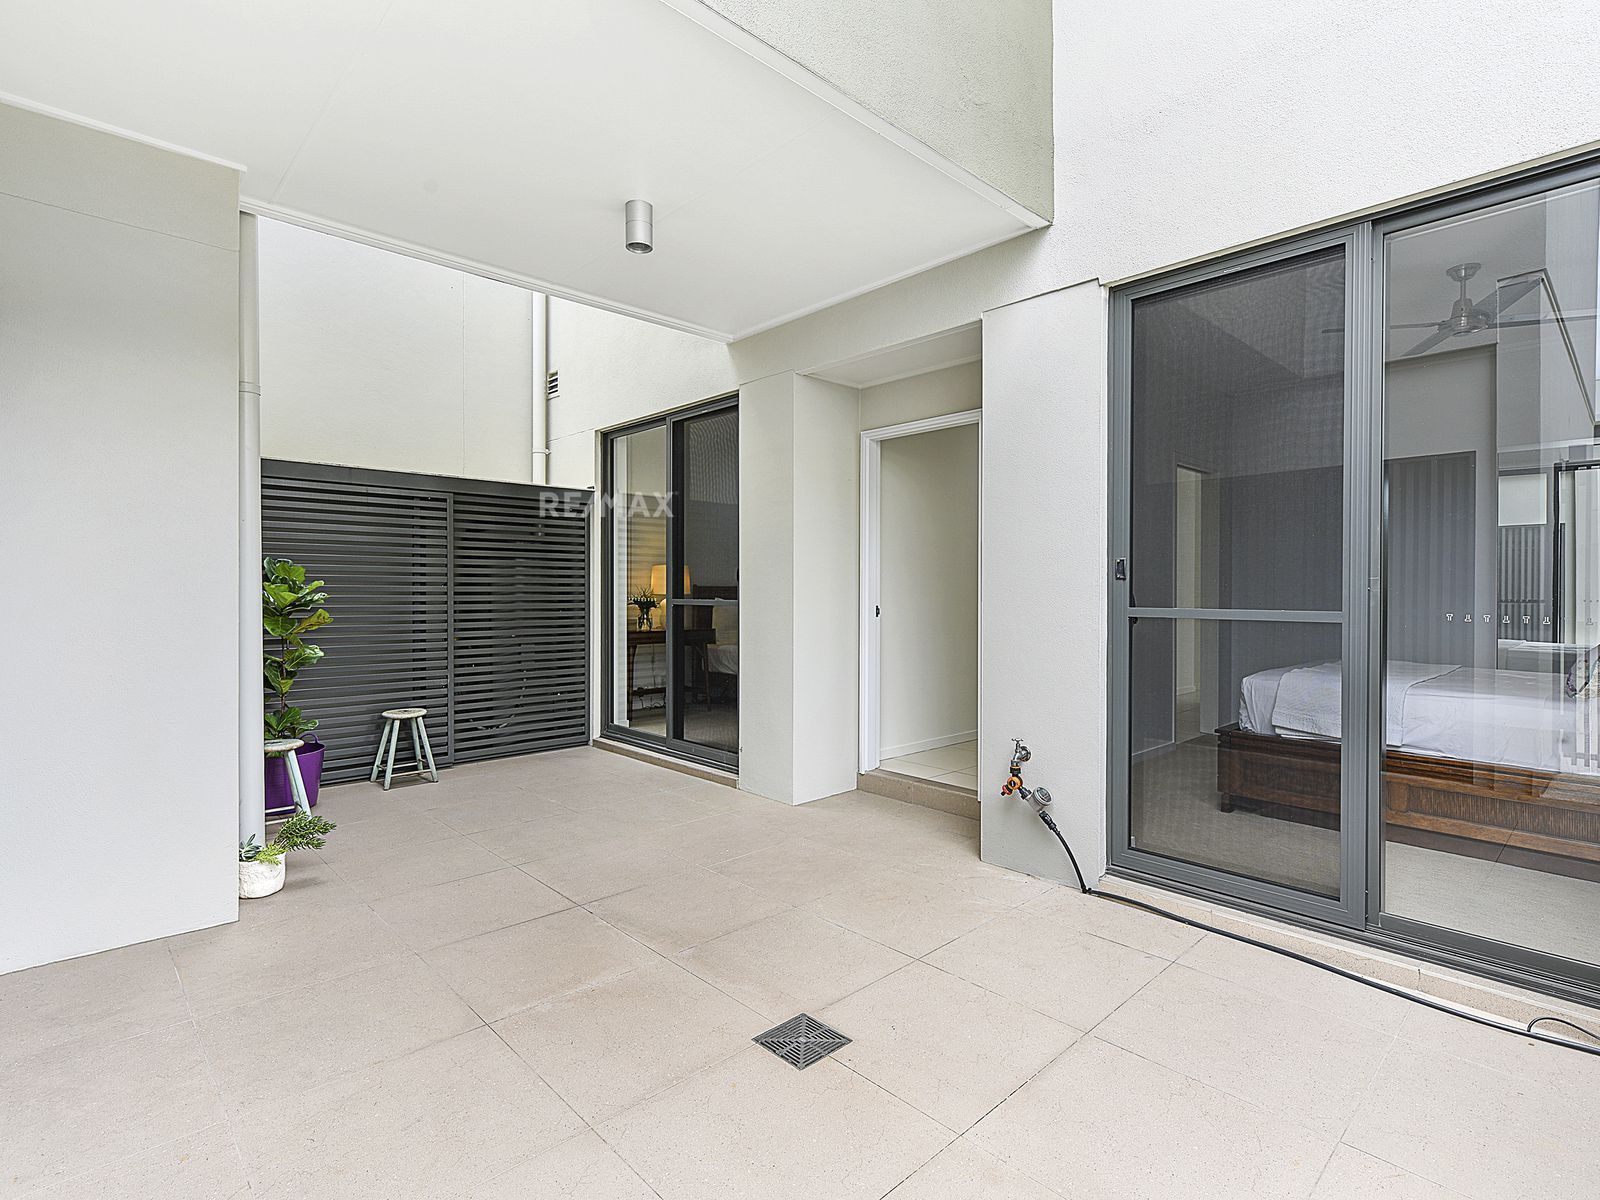 6 / 9 Moores Crescent, Varsity Lakes